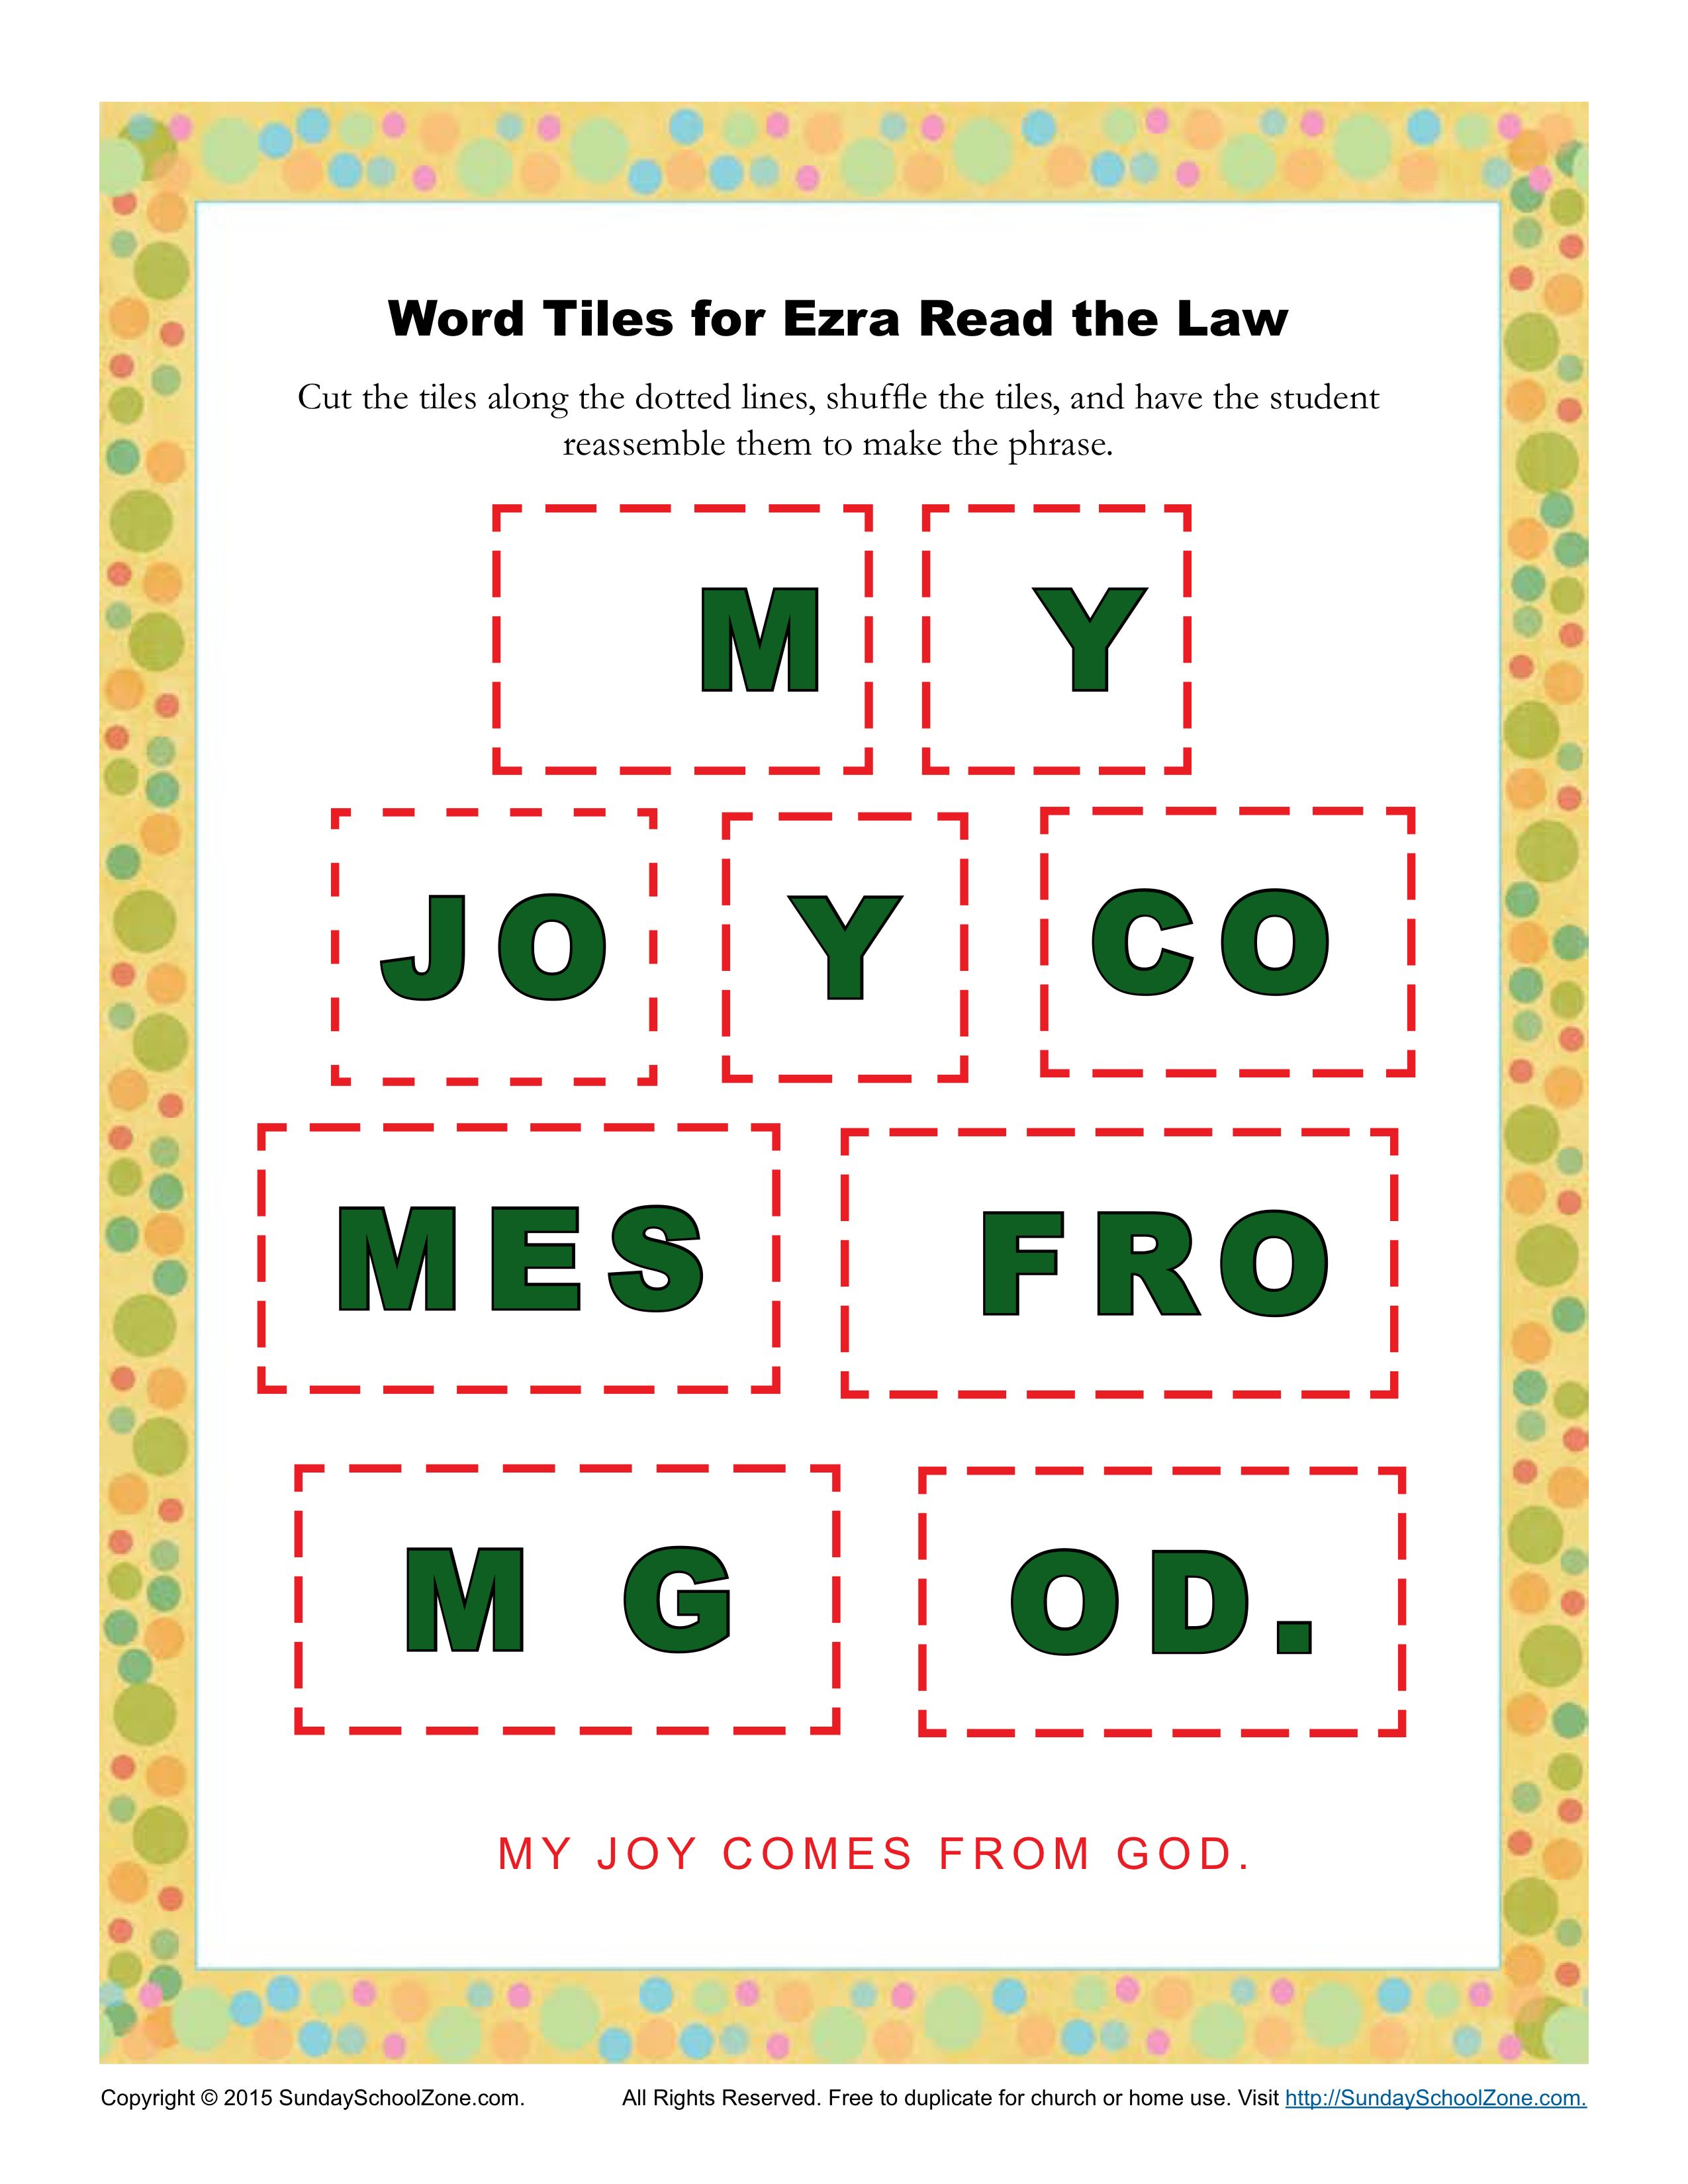 Ezra Read The Law Word Tiles